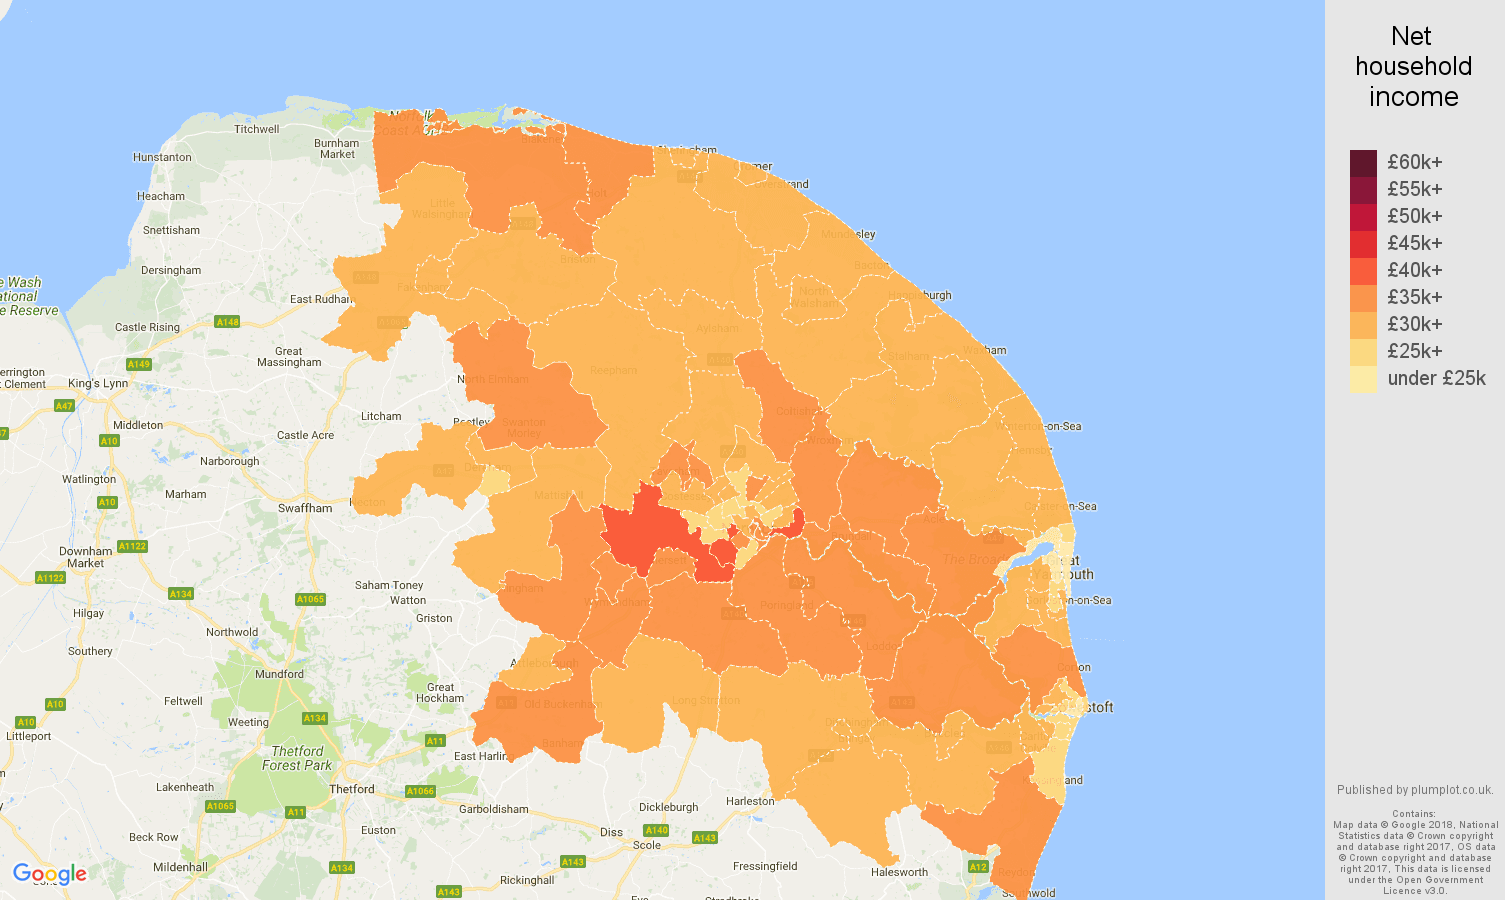 Norwich net household income map